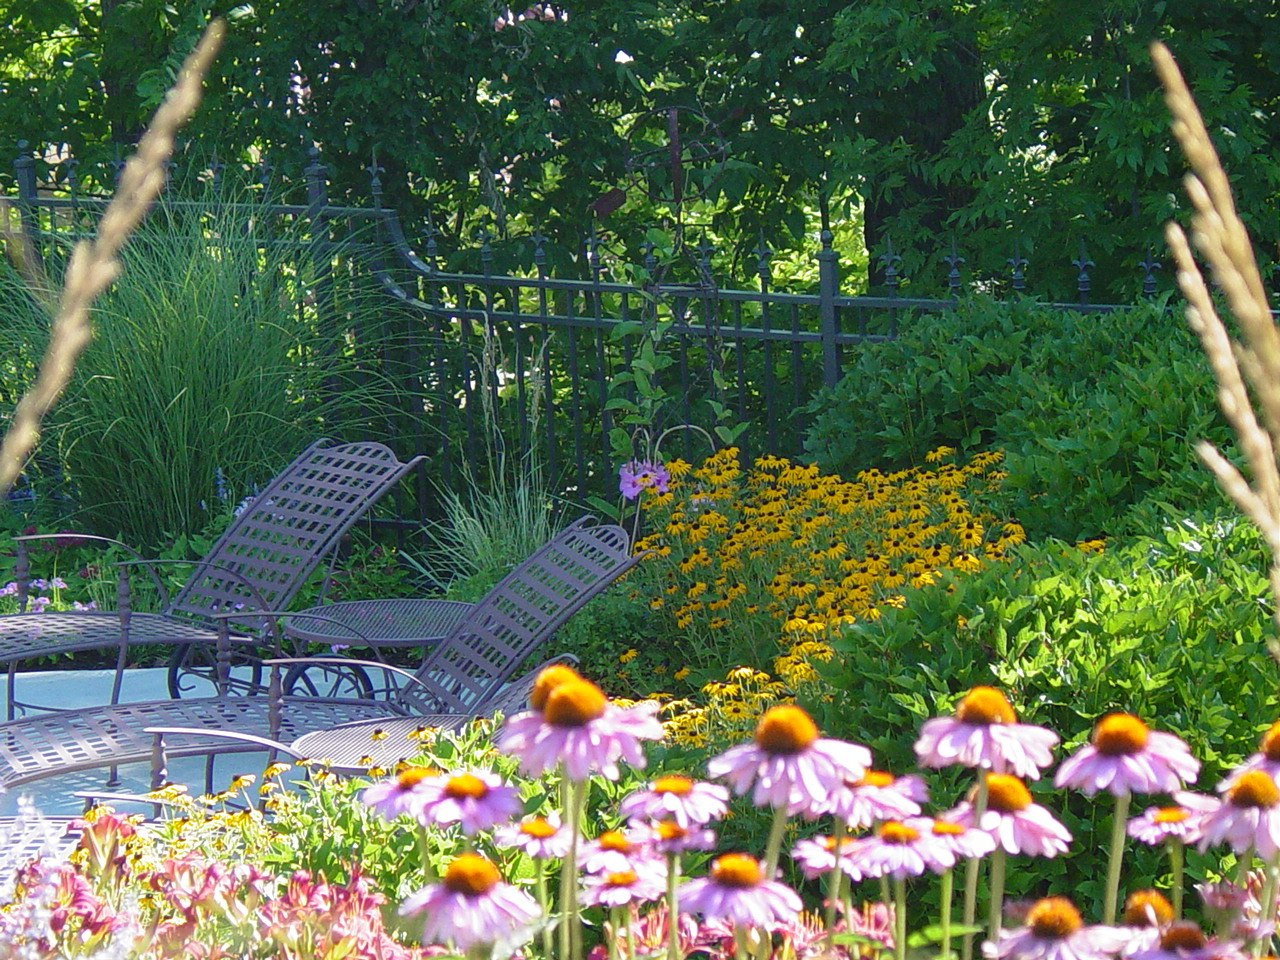 Masses of native perennials attract insects birds need for food.